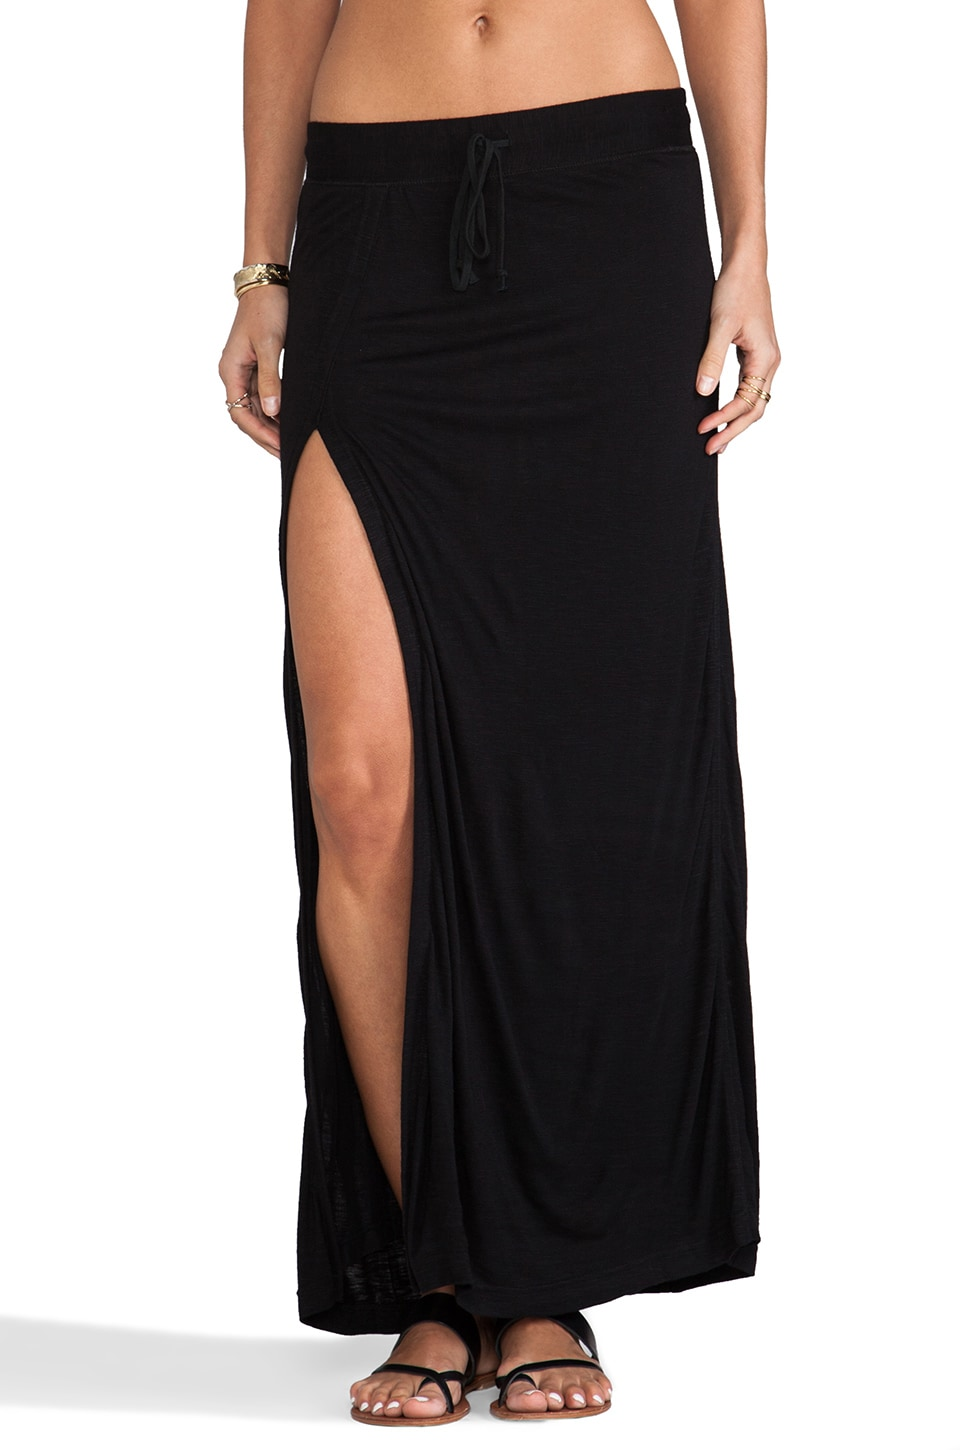 Pencey Standard Feature High Slit Skirt in Black